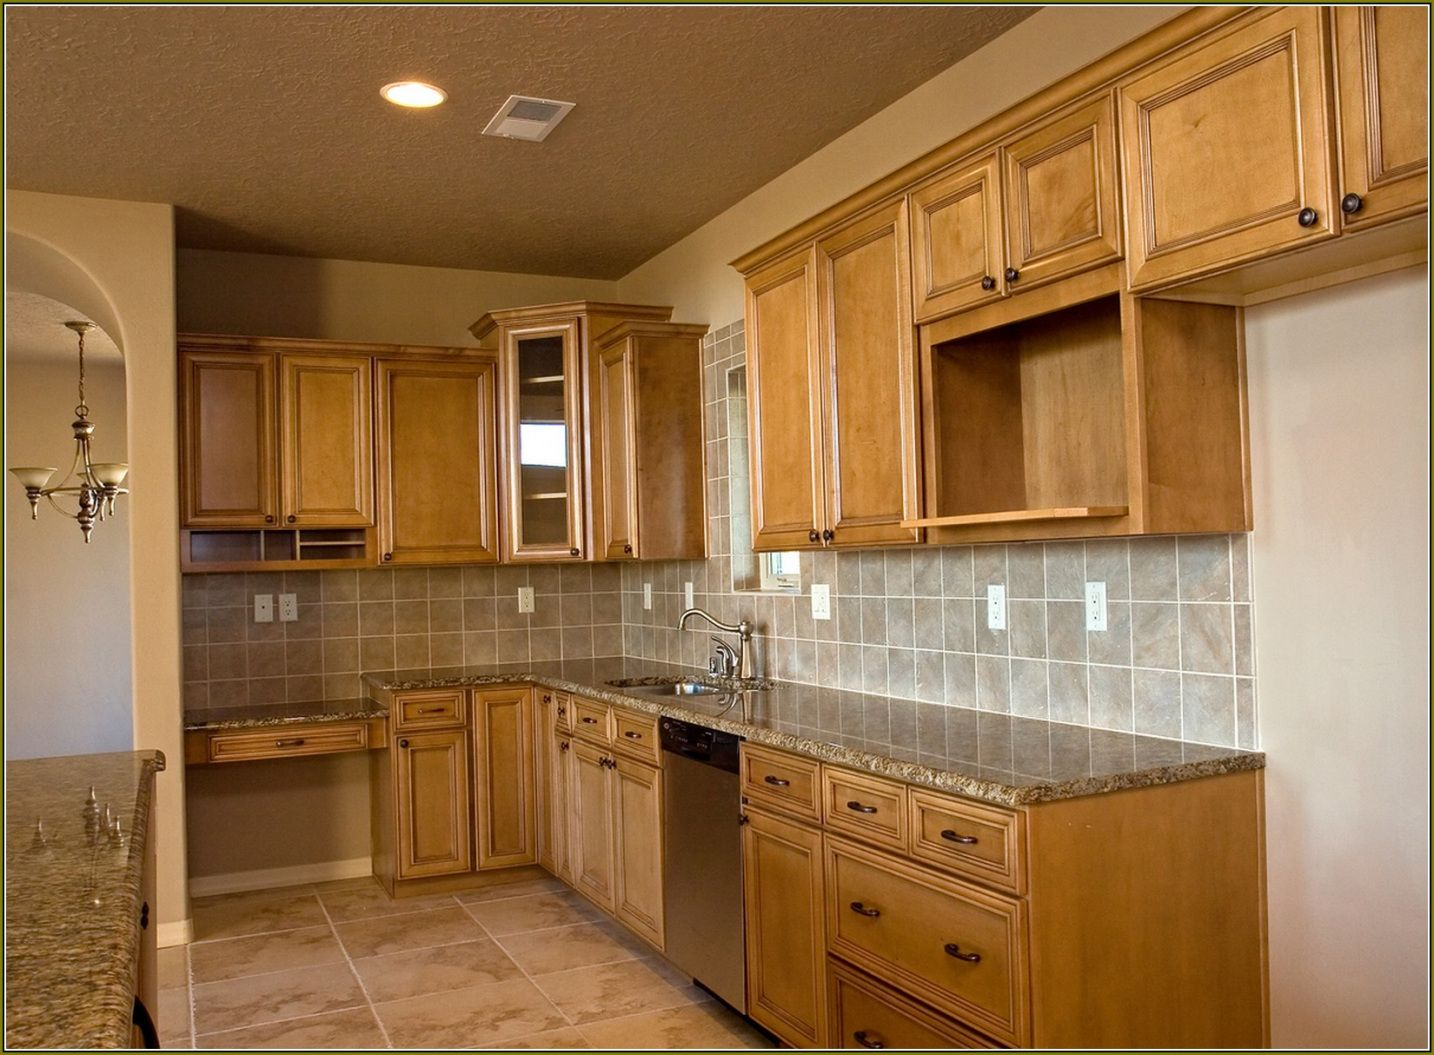 50 Kitchen Cabinets Lowes Home Depot Cheap Kitchen Decorating Ideas Check More At Htt Home Depot Kitchen Kitchen Cabinets Home Depot Kitchen Cabinets Prices